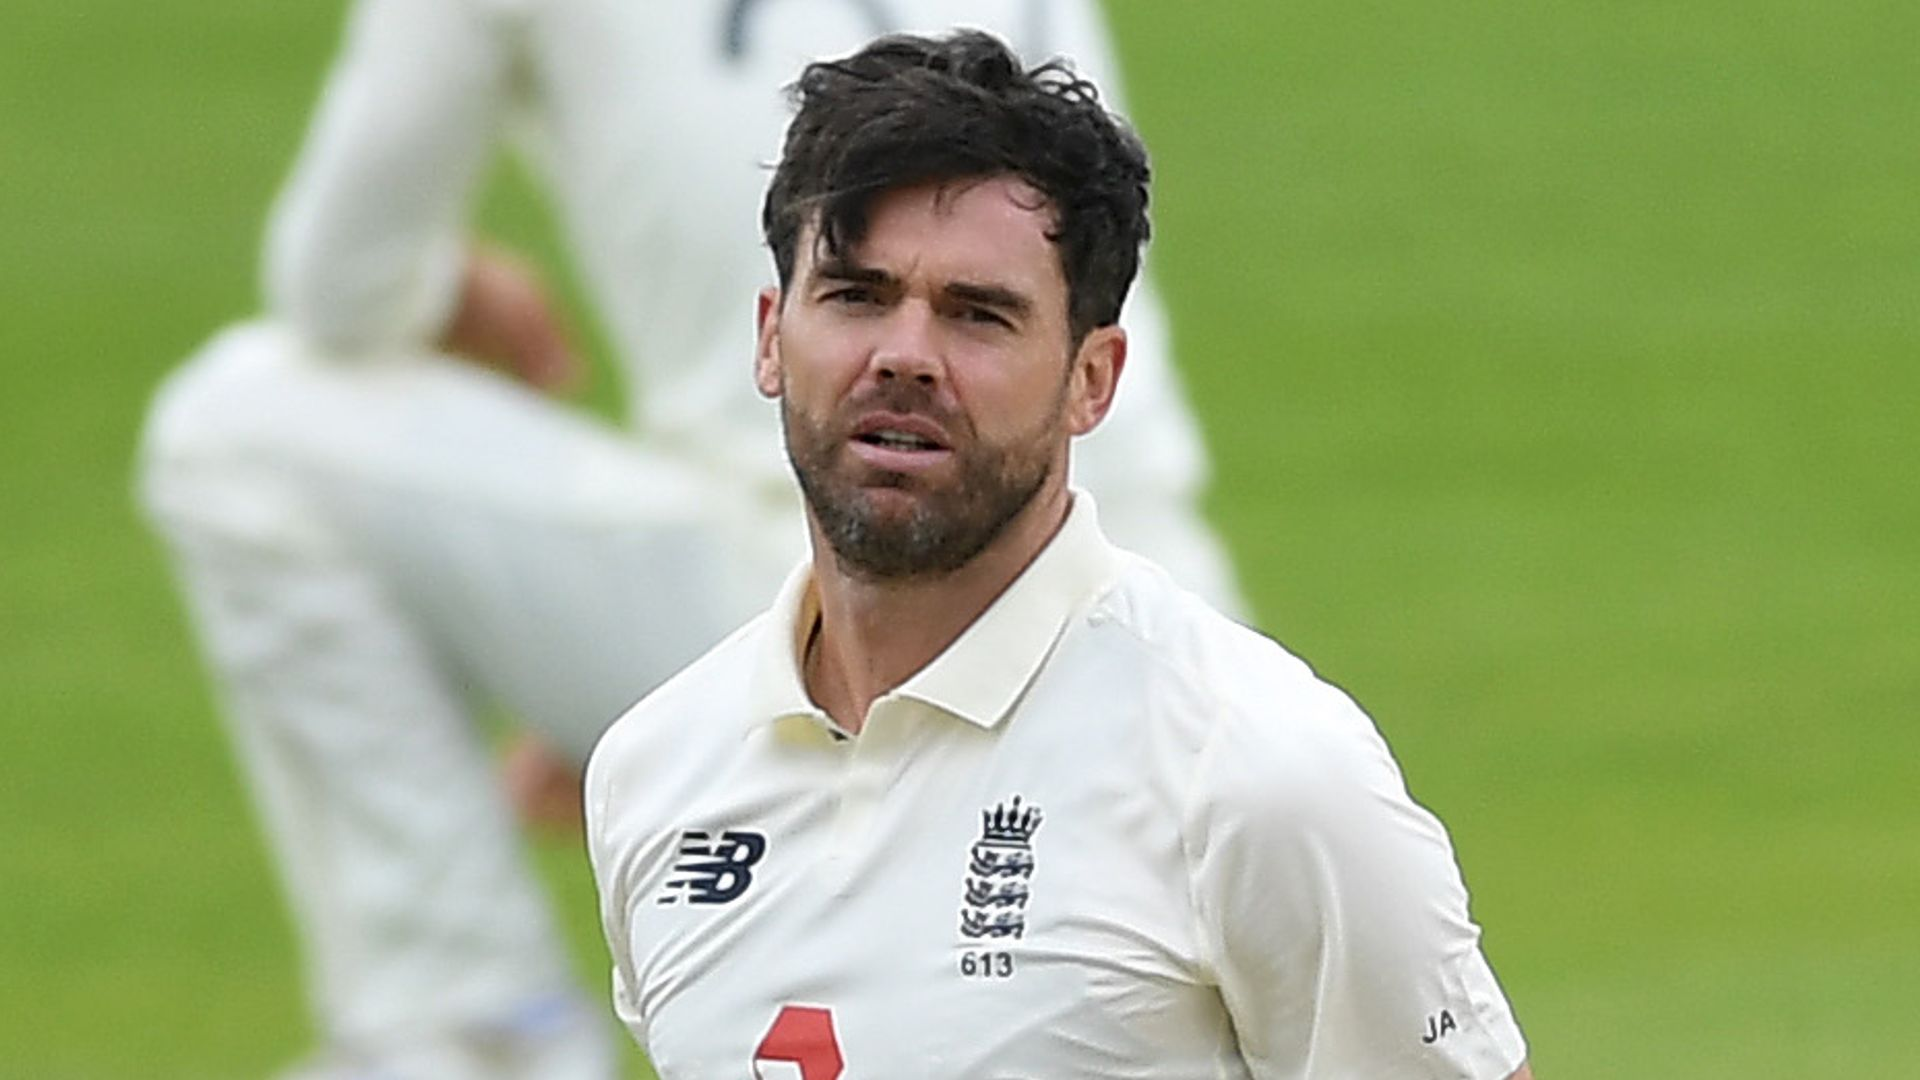 Stewart: England let Pakistan off the hook - sky sports